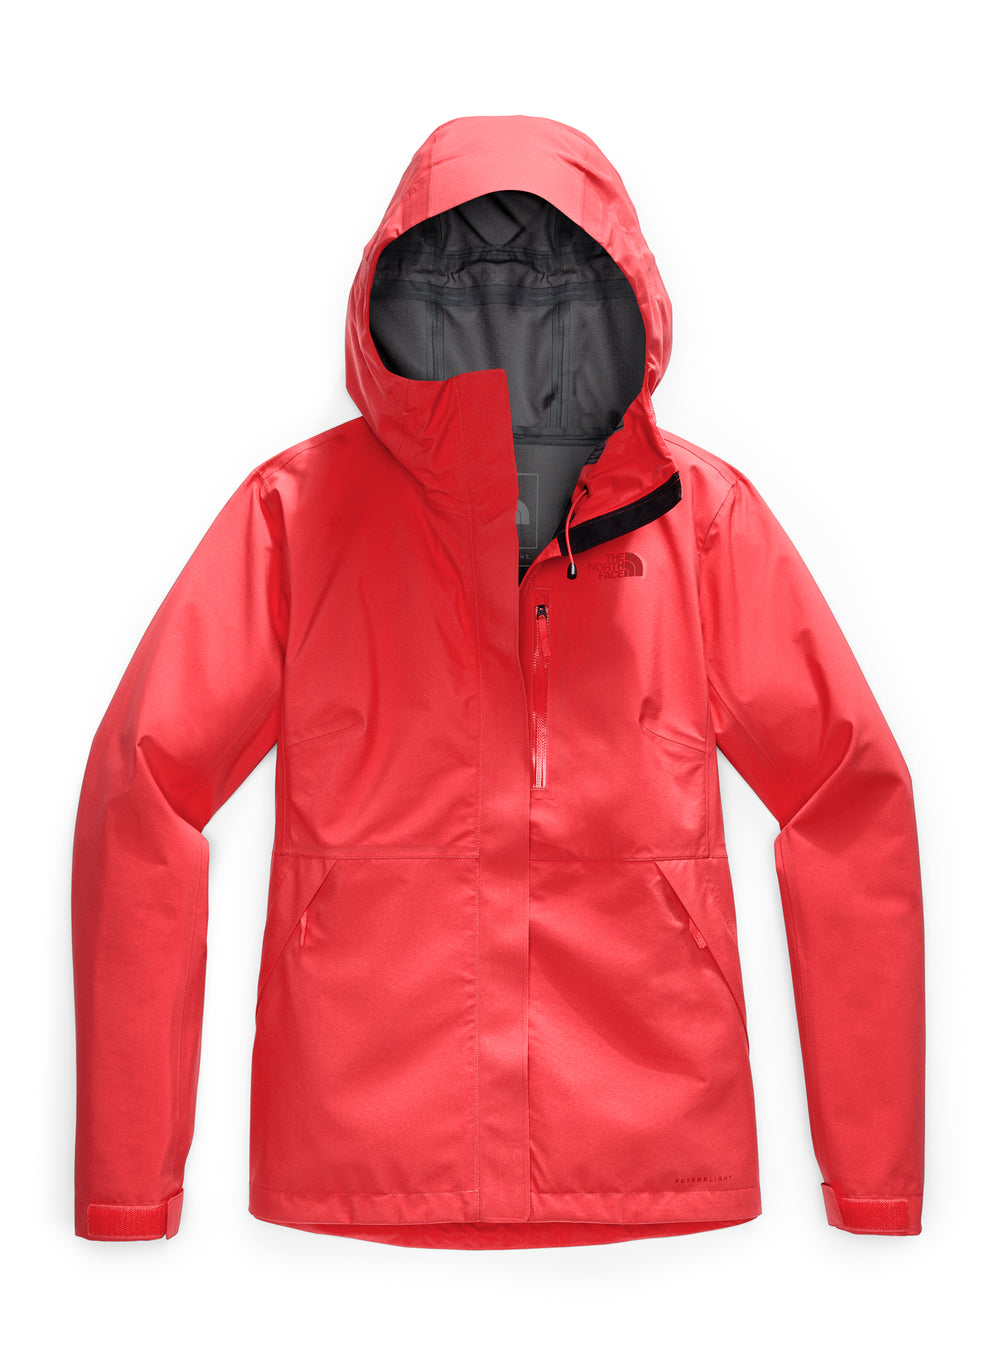 The North Face Dryzzle FL Jacket - Women's